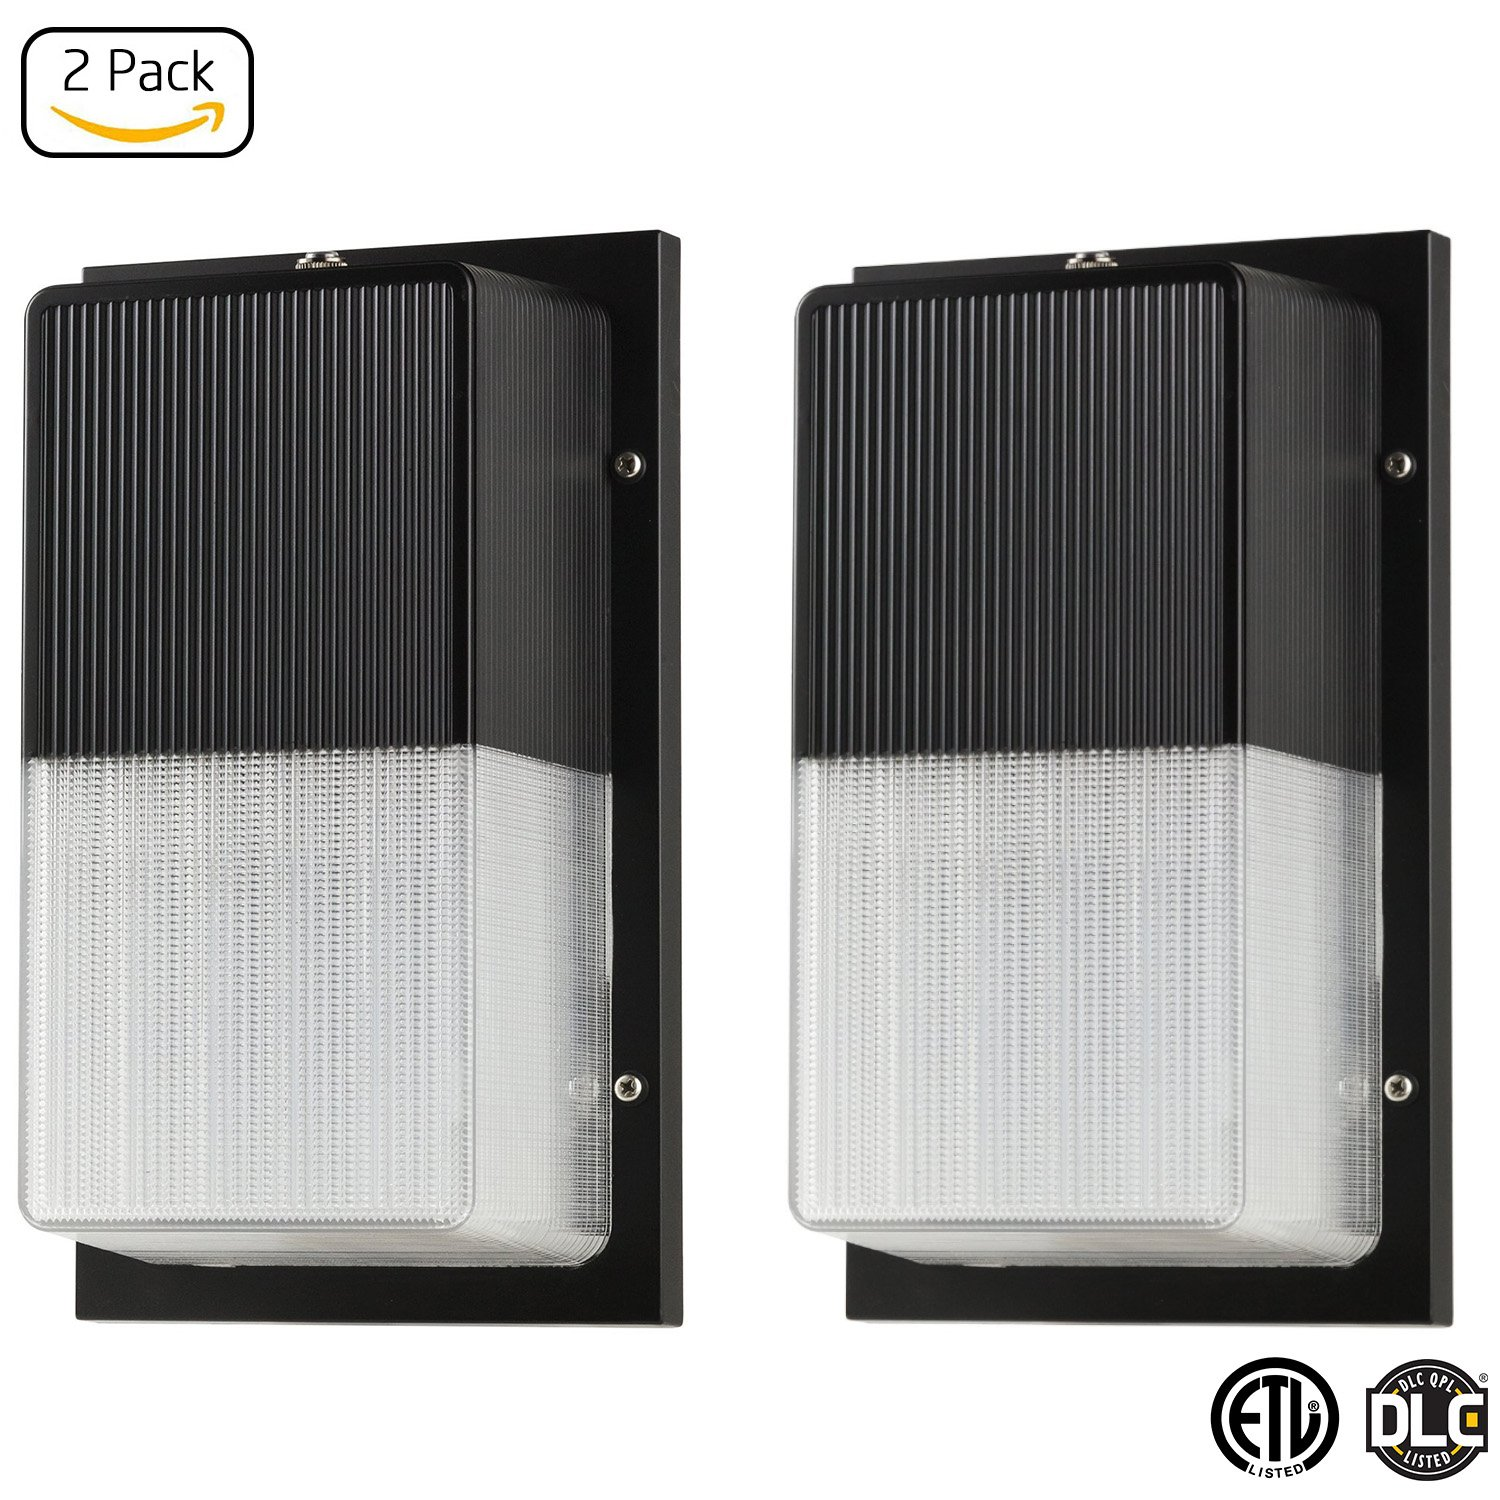 LB75224-2 15W LED Wall Pack Fixture, 100W HPS/HID Replacement, 5000K Daylight, 1050 Lumens, Dusk to Dawn Photocell, Waterproof and Outdoor Rated, ETL & DLC Listed (2-PACK)